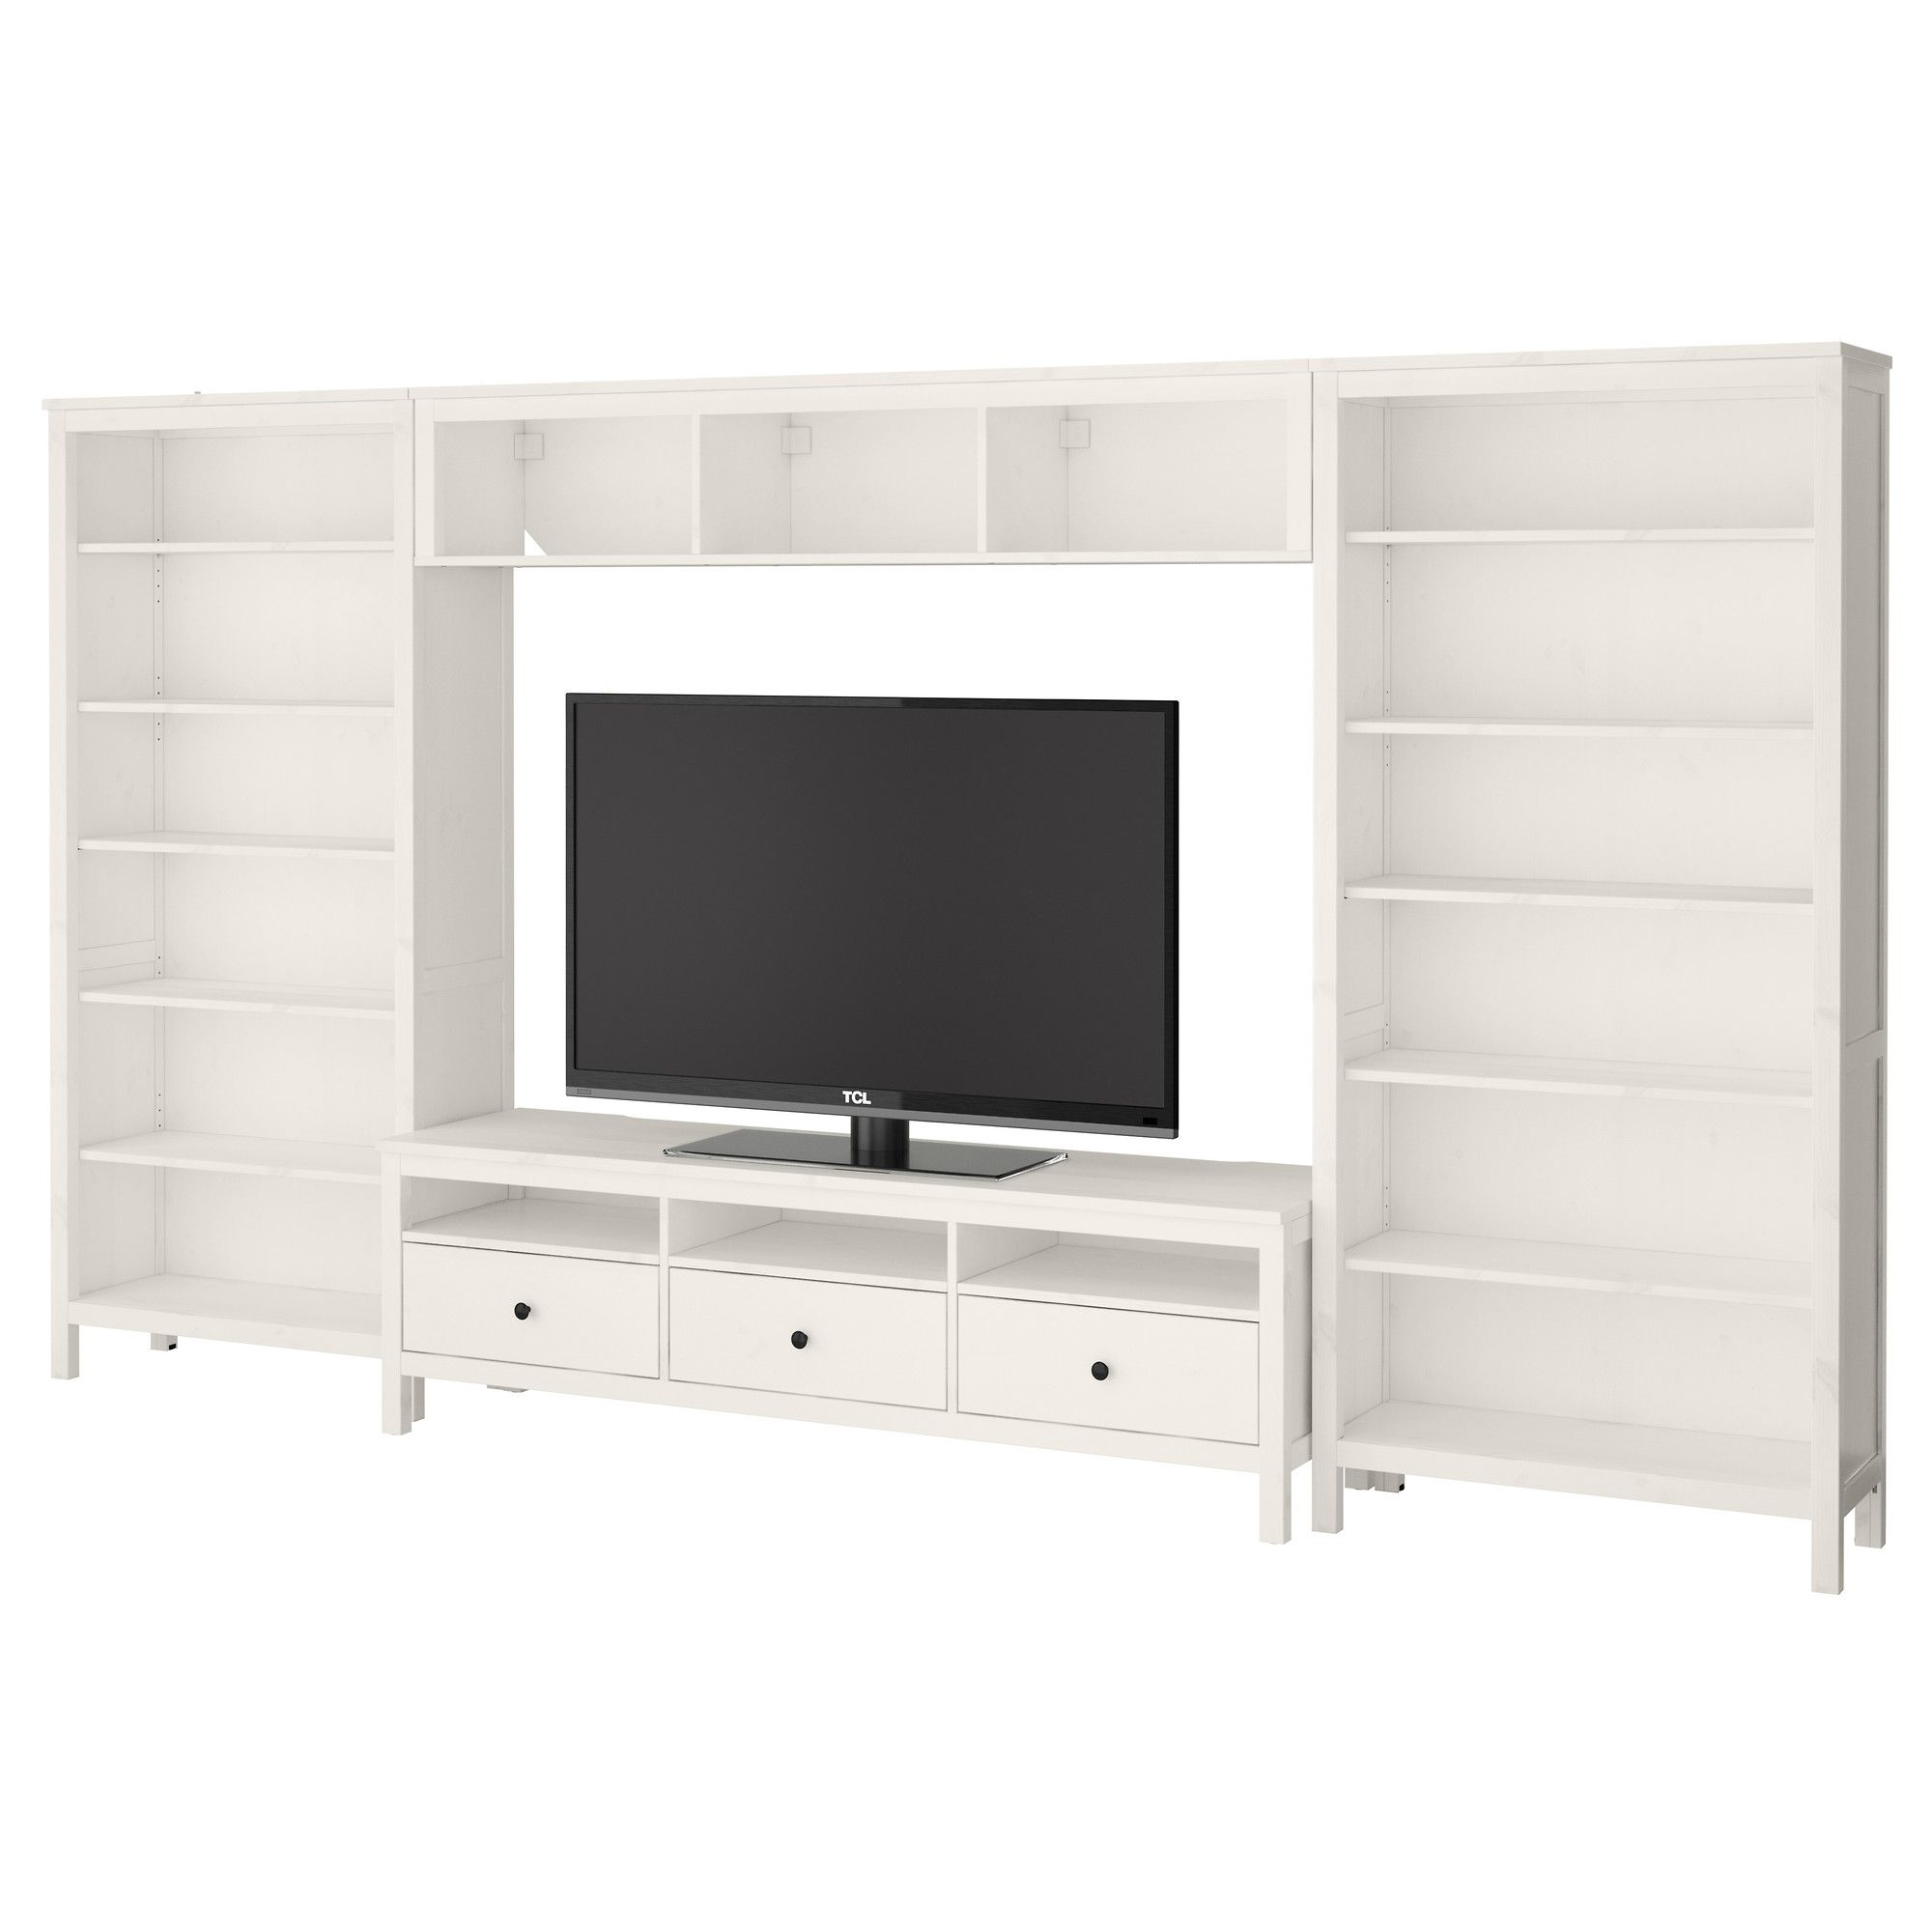 Hemnes Tv Storage Combination White Stain Ikea 64700